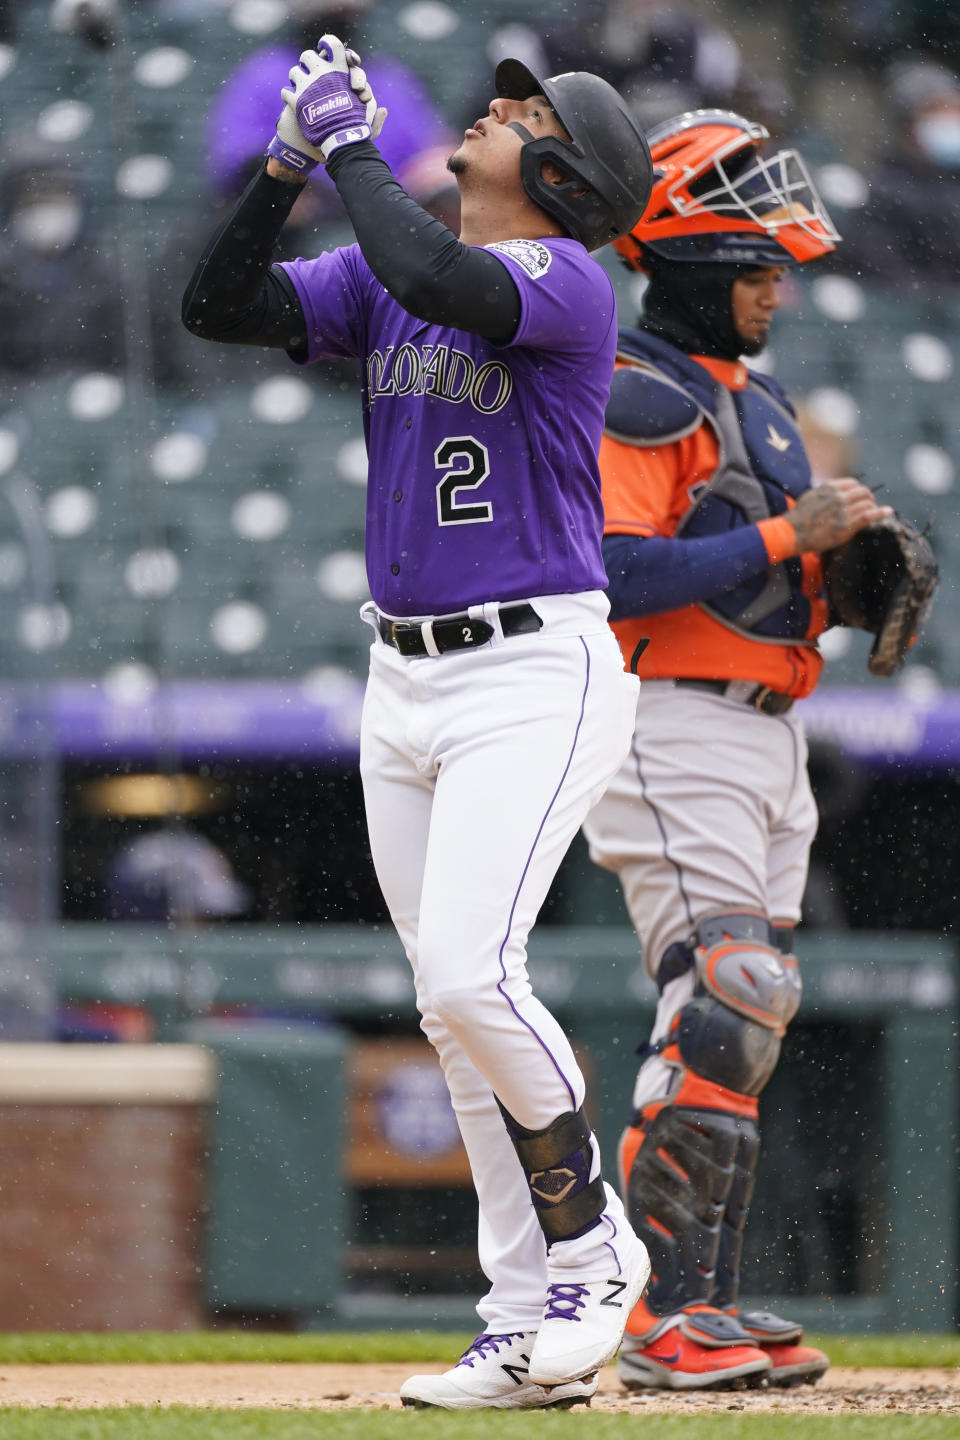 Colorado Rockies' Yonathan Daza, front, celebrates as he crosses home plate after hitting a solo home run as Houston Astros catcher Martin Maldonado looks on in the second inning of a baseball game Wednesday, April 21, 2021, in Denver. (AP Photo/David Zalubowski)